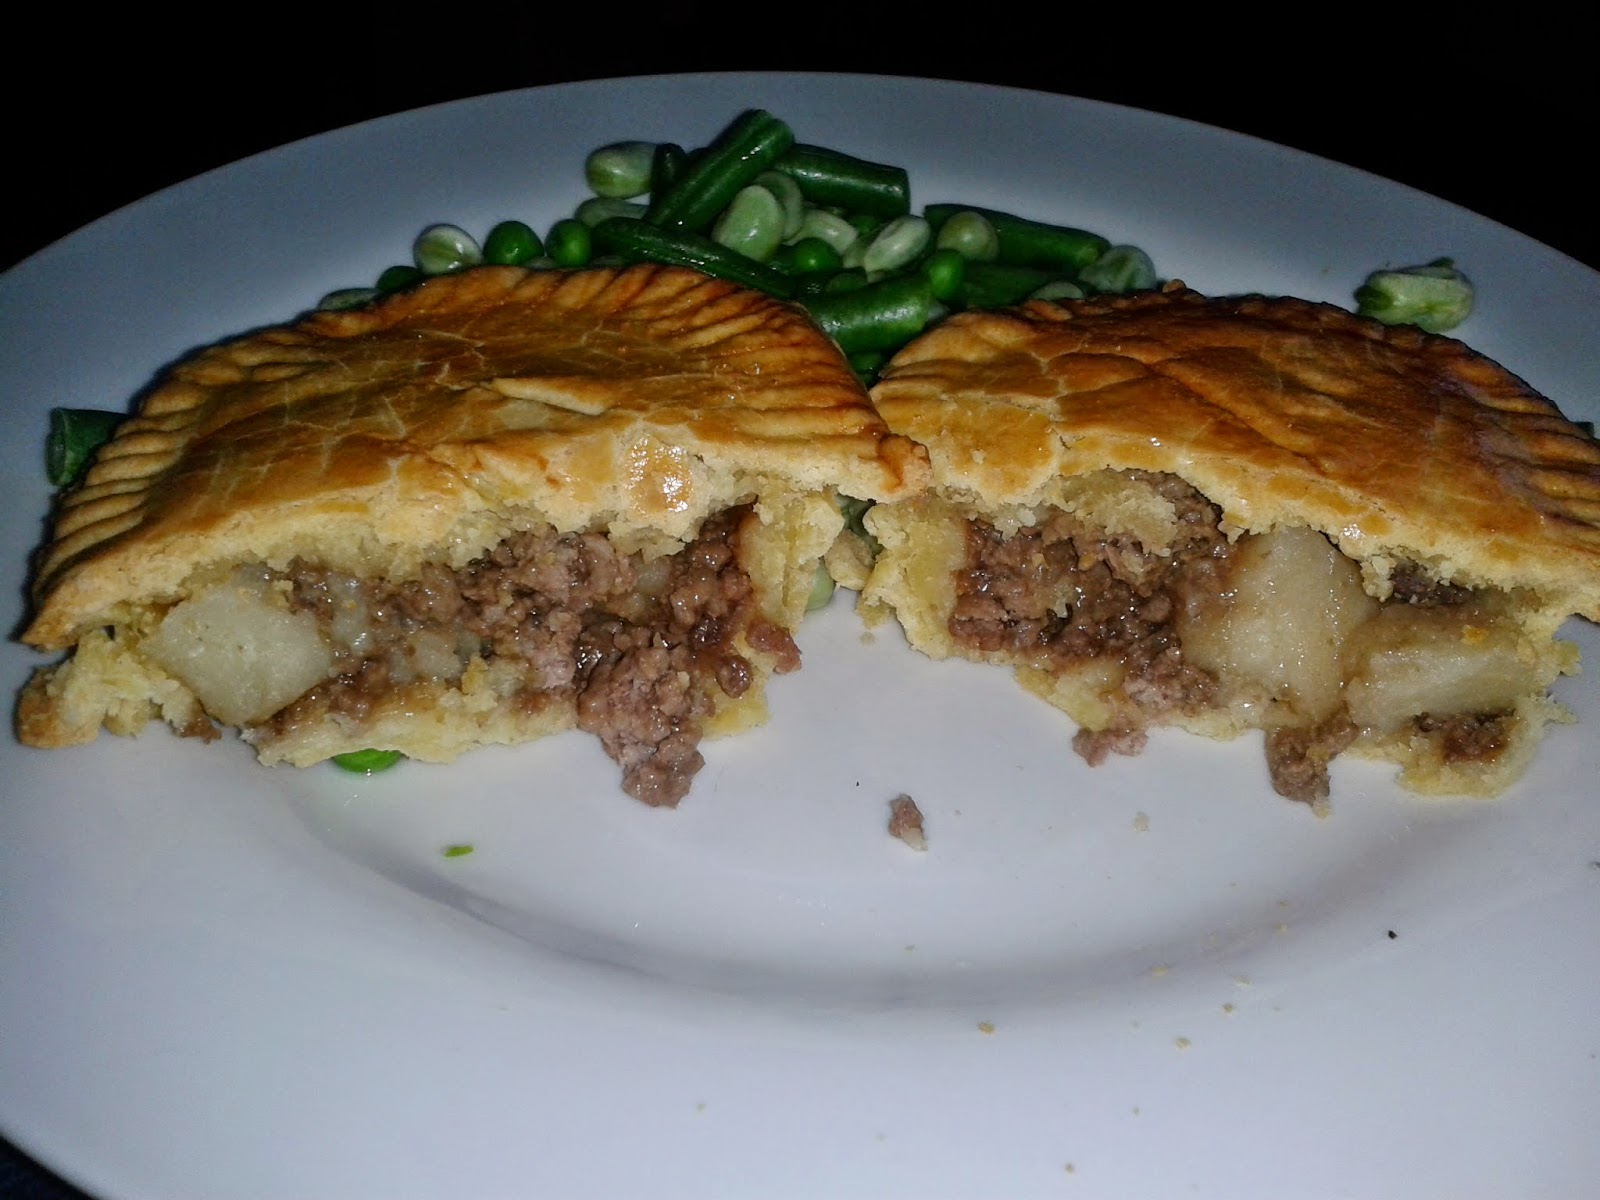 Meat and Potato Pie cut in half